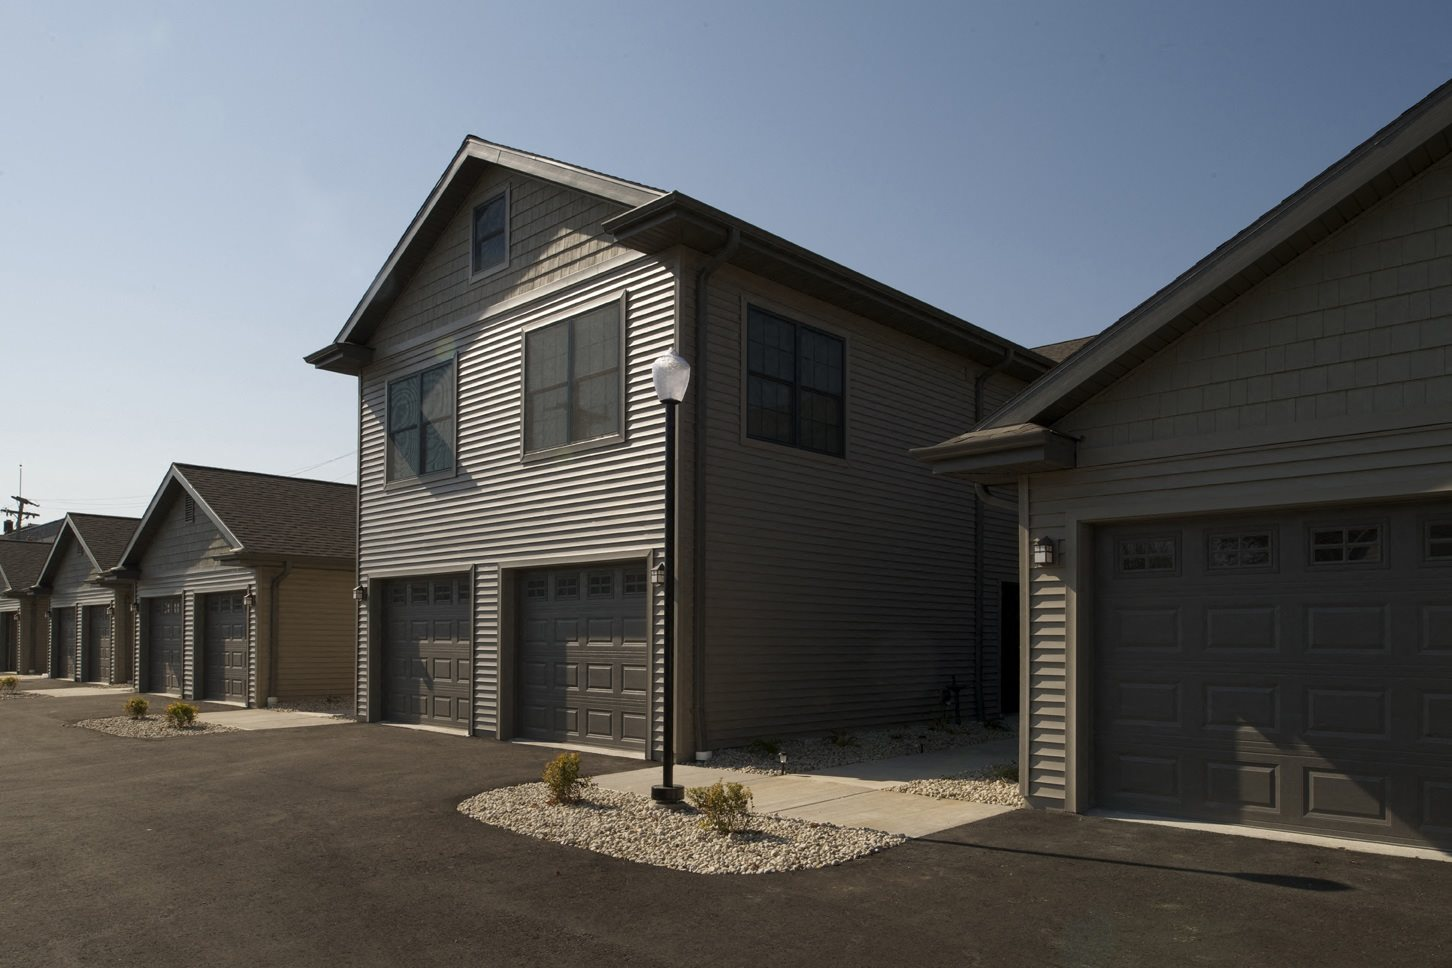 Photos and video of fond du lac townhomes in fond du lac wi for Design homes inc fond du lac wi